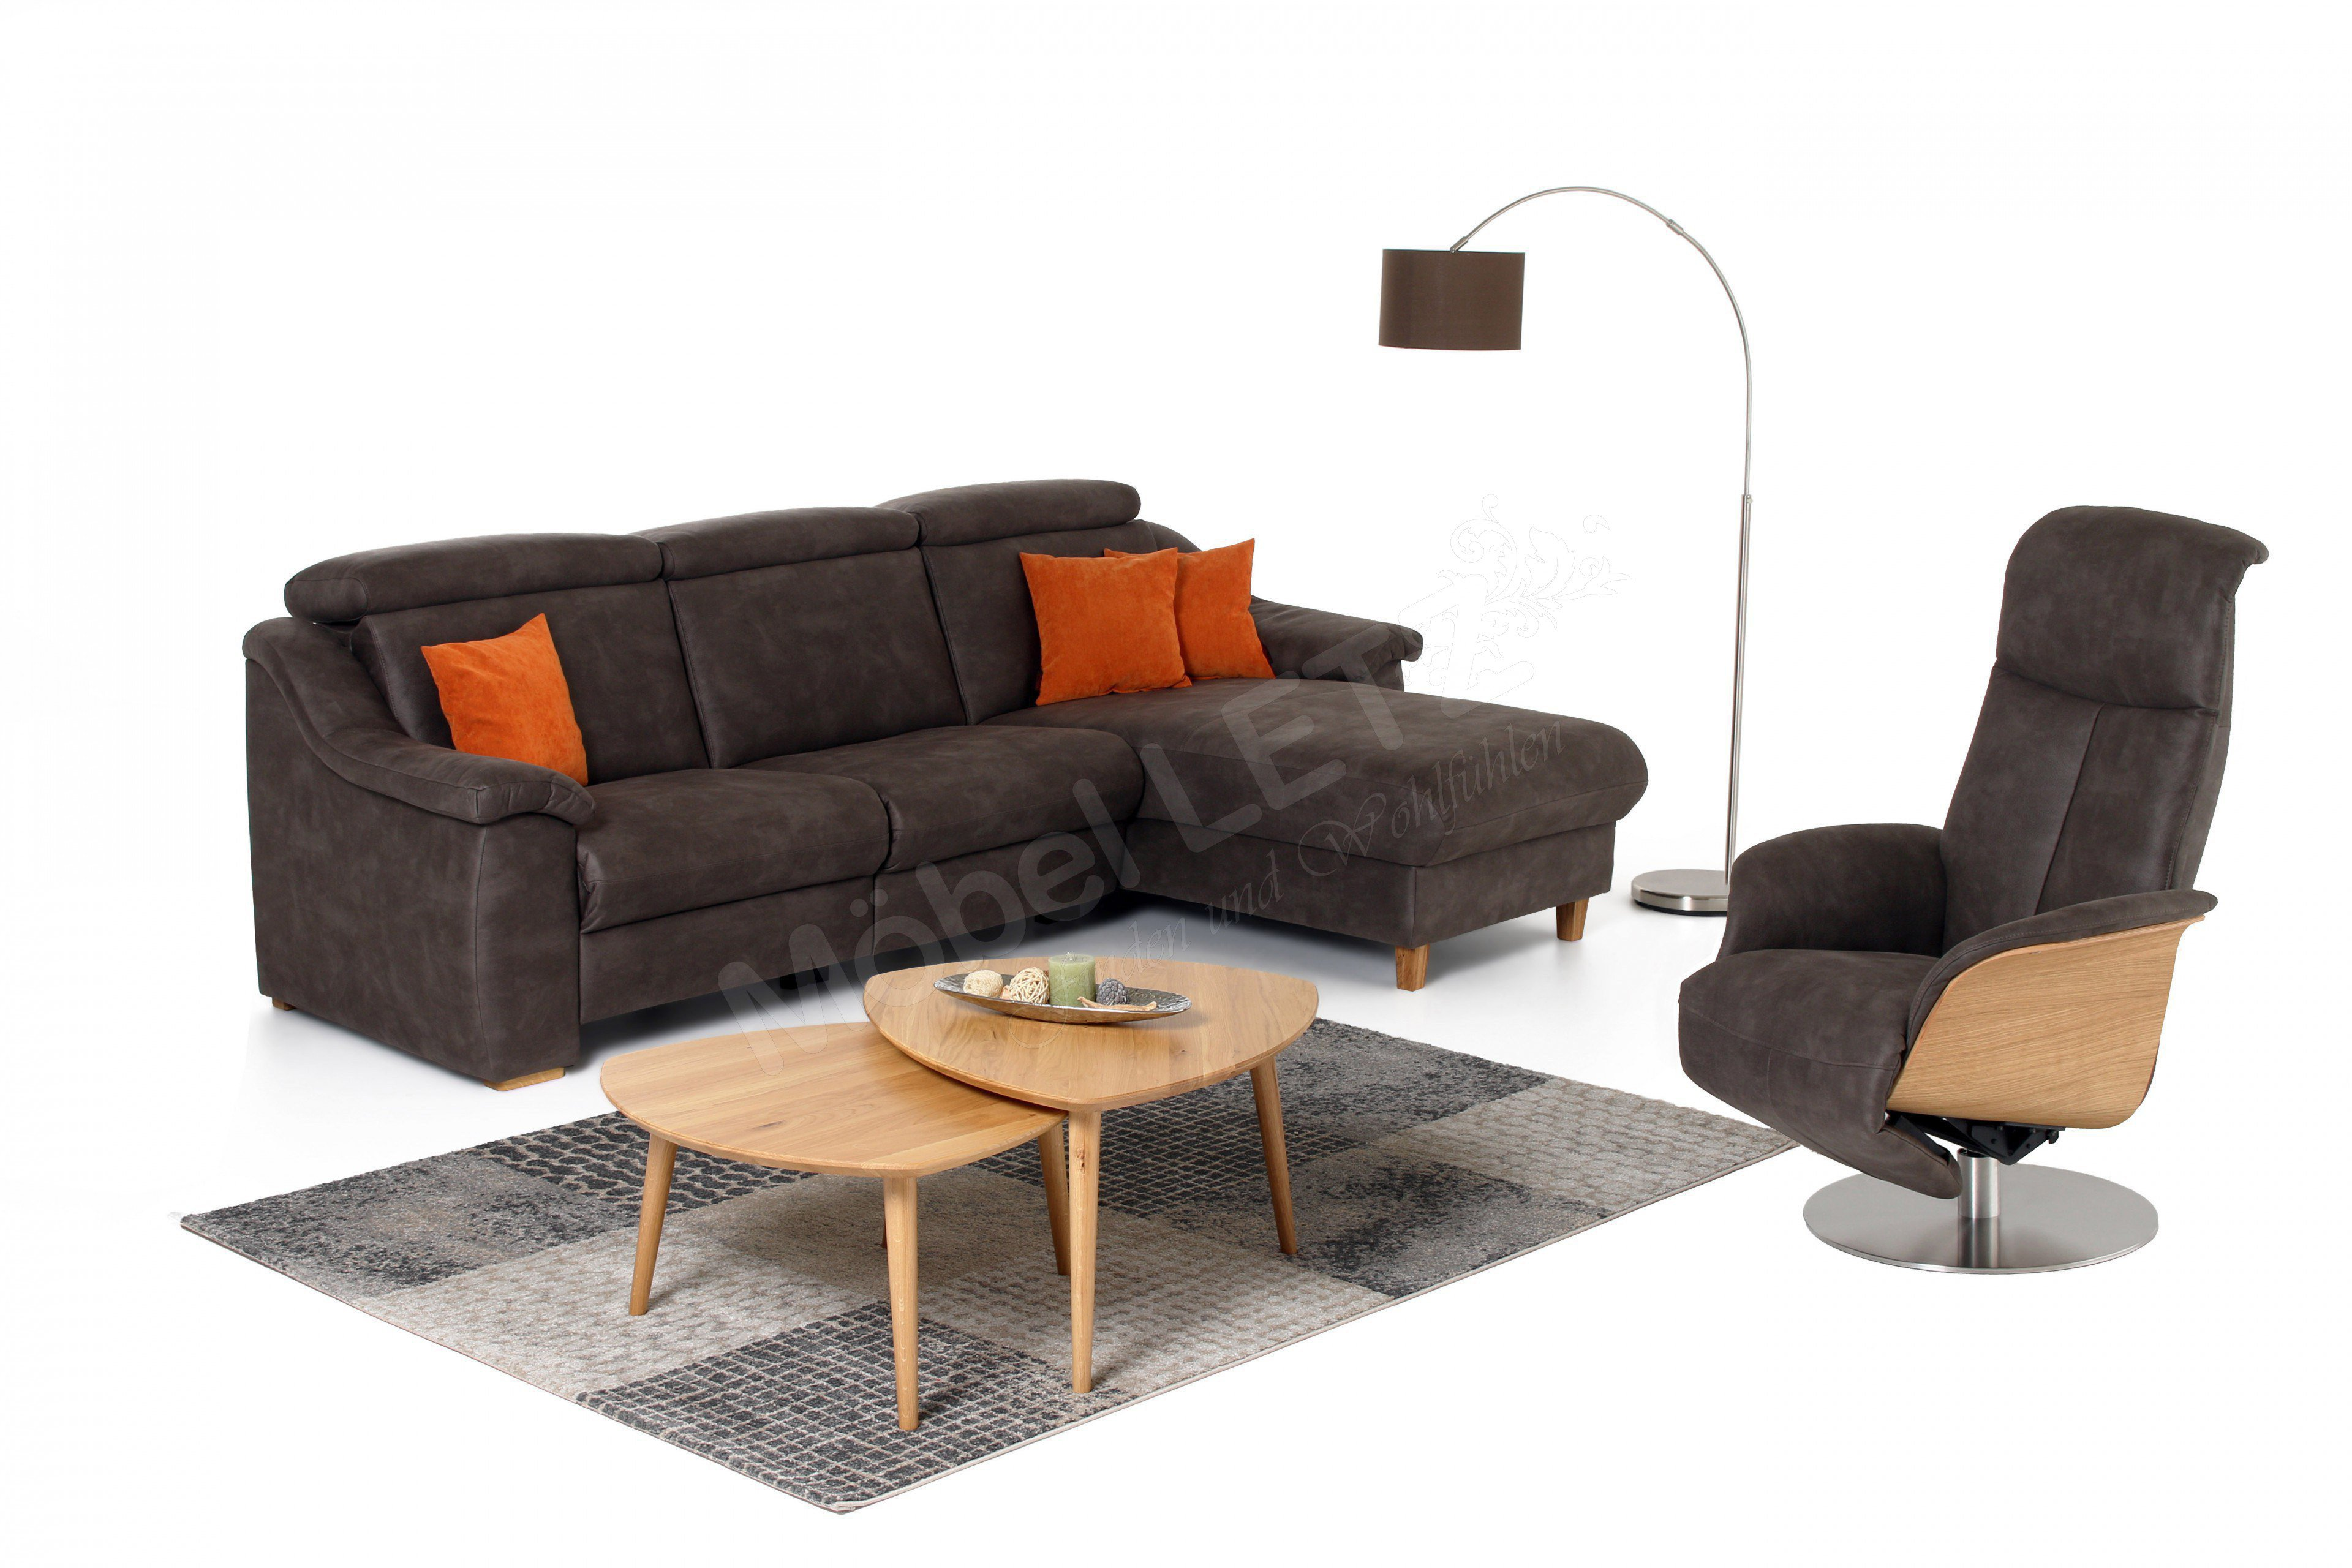 skandinavische m bel jarven ecksofa in braun m bel letz ihr online shop. Black Bedroom Furniture Sets. Home Design Ideas